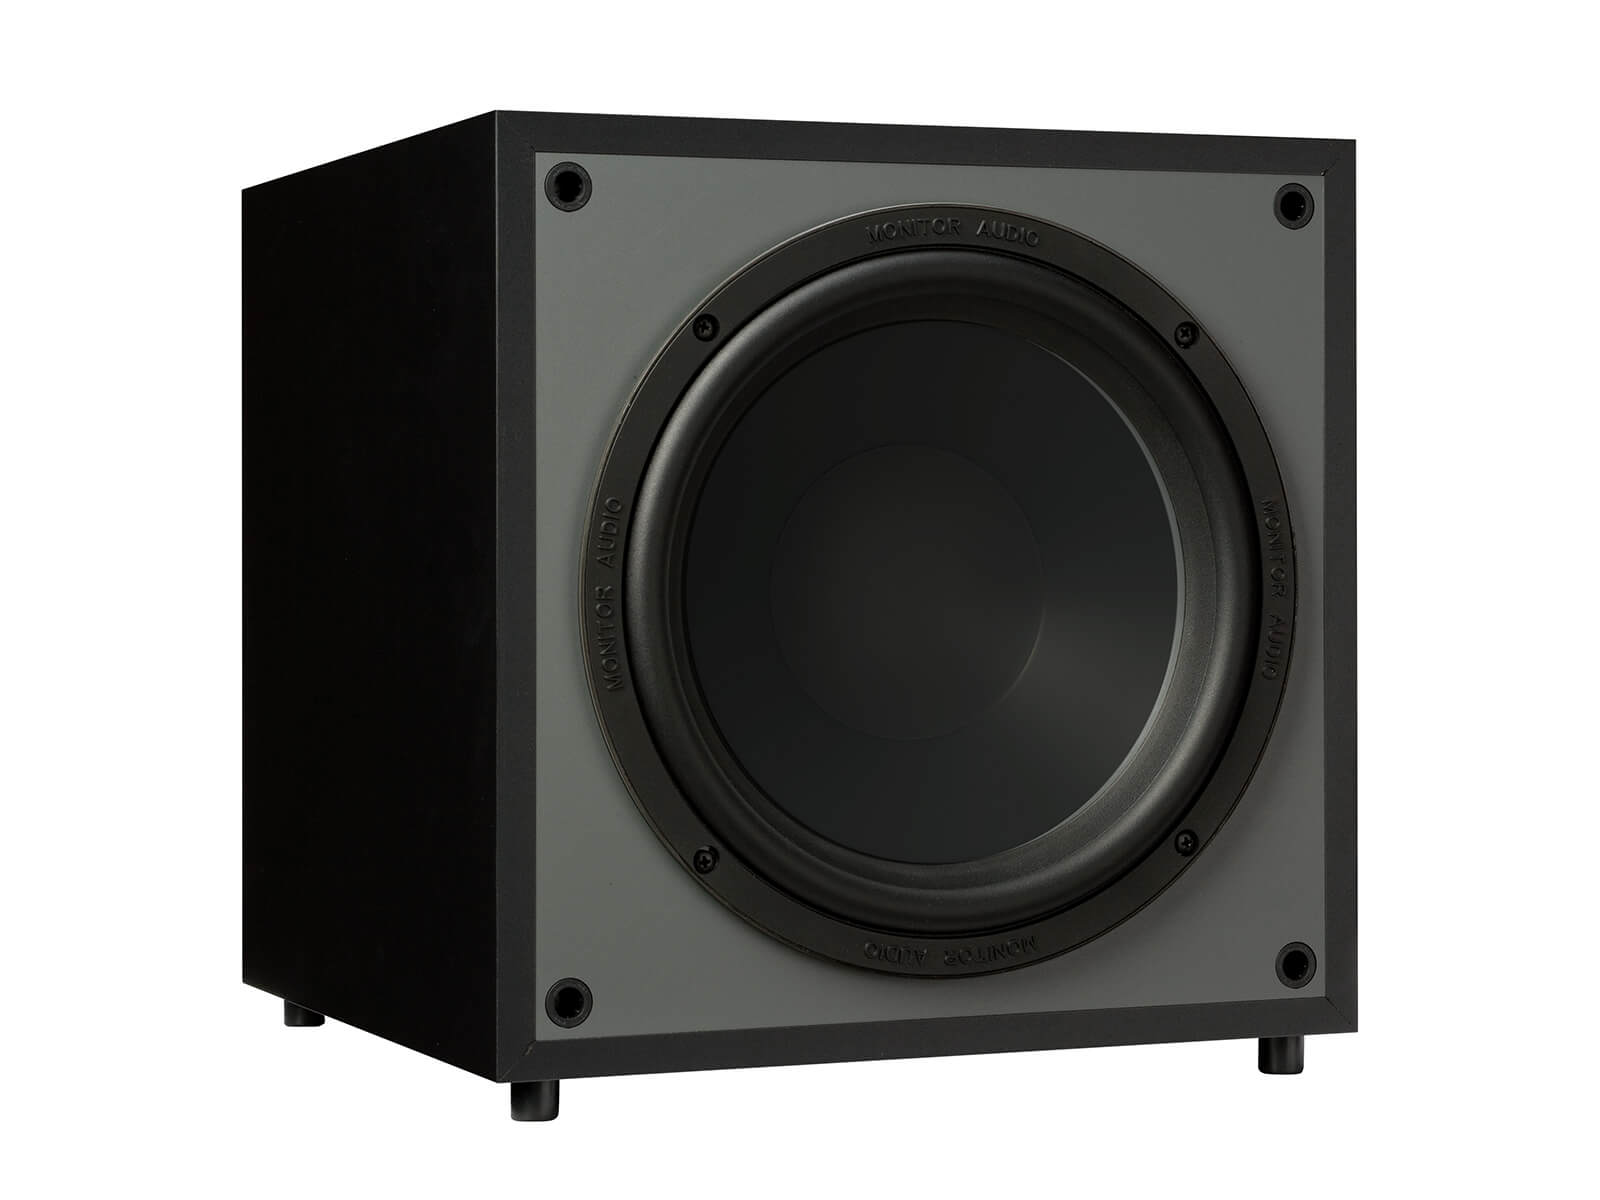 Monitor MRW-10, grille-less subwoofer, with a black finish.